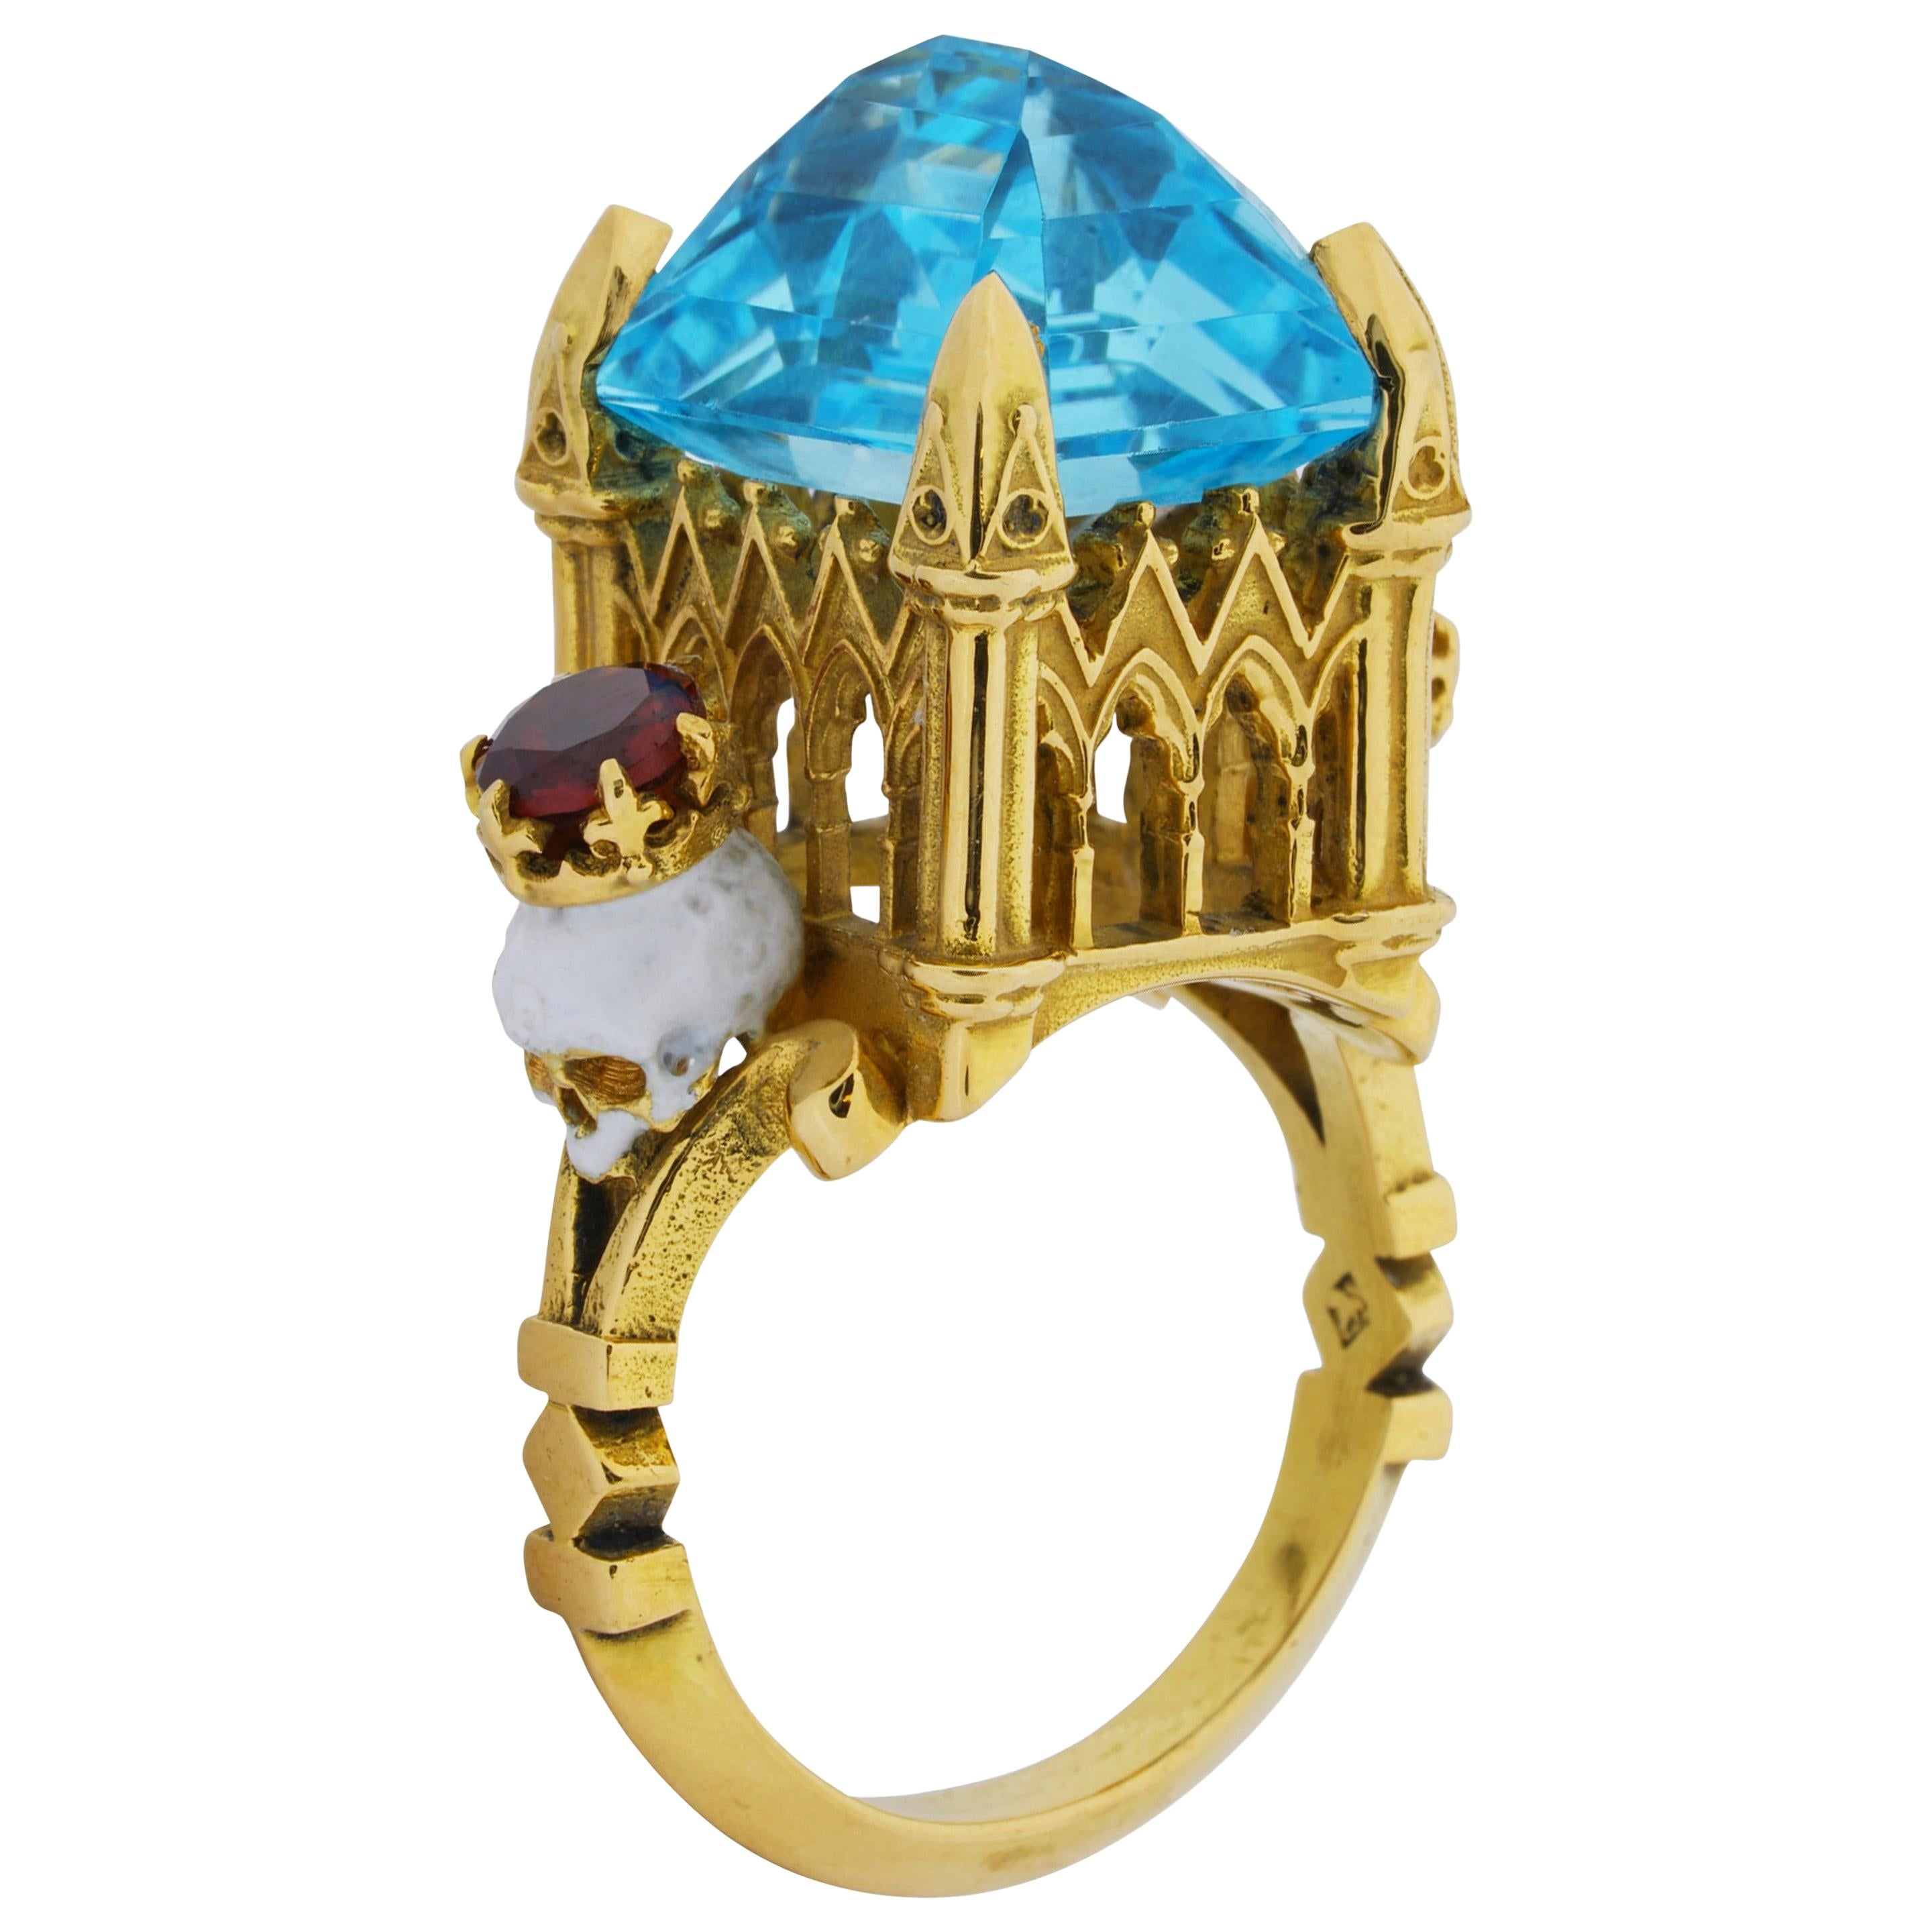 Catacomb Saints Cathedral Ring in 18 Karat Yellow Gold with Topaz and Garnets